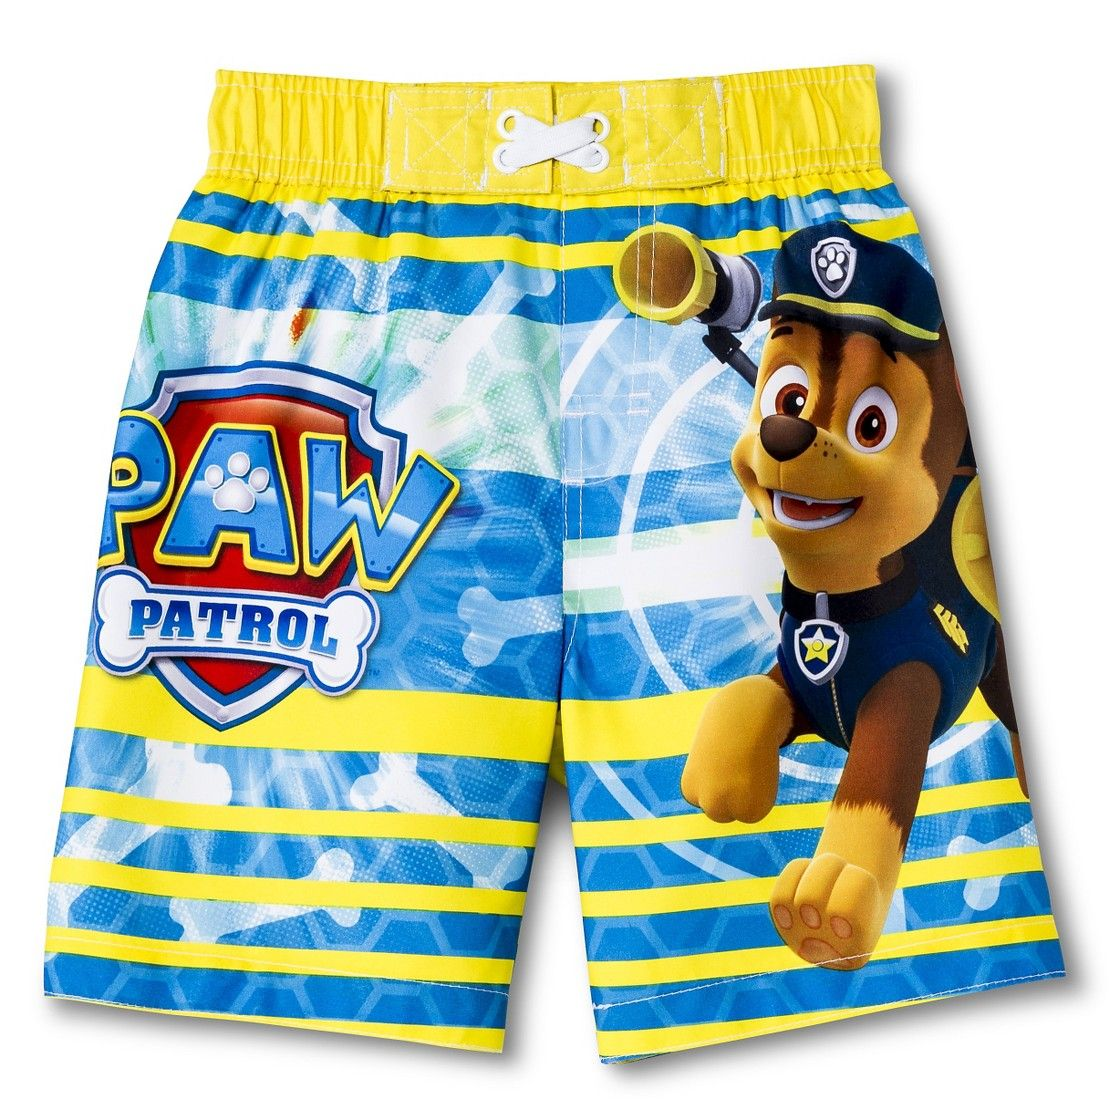 Paw Patrol Swim Shorts Team Paw Trunks for Babies and Toddlers